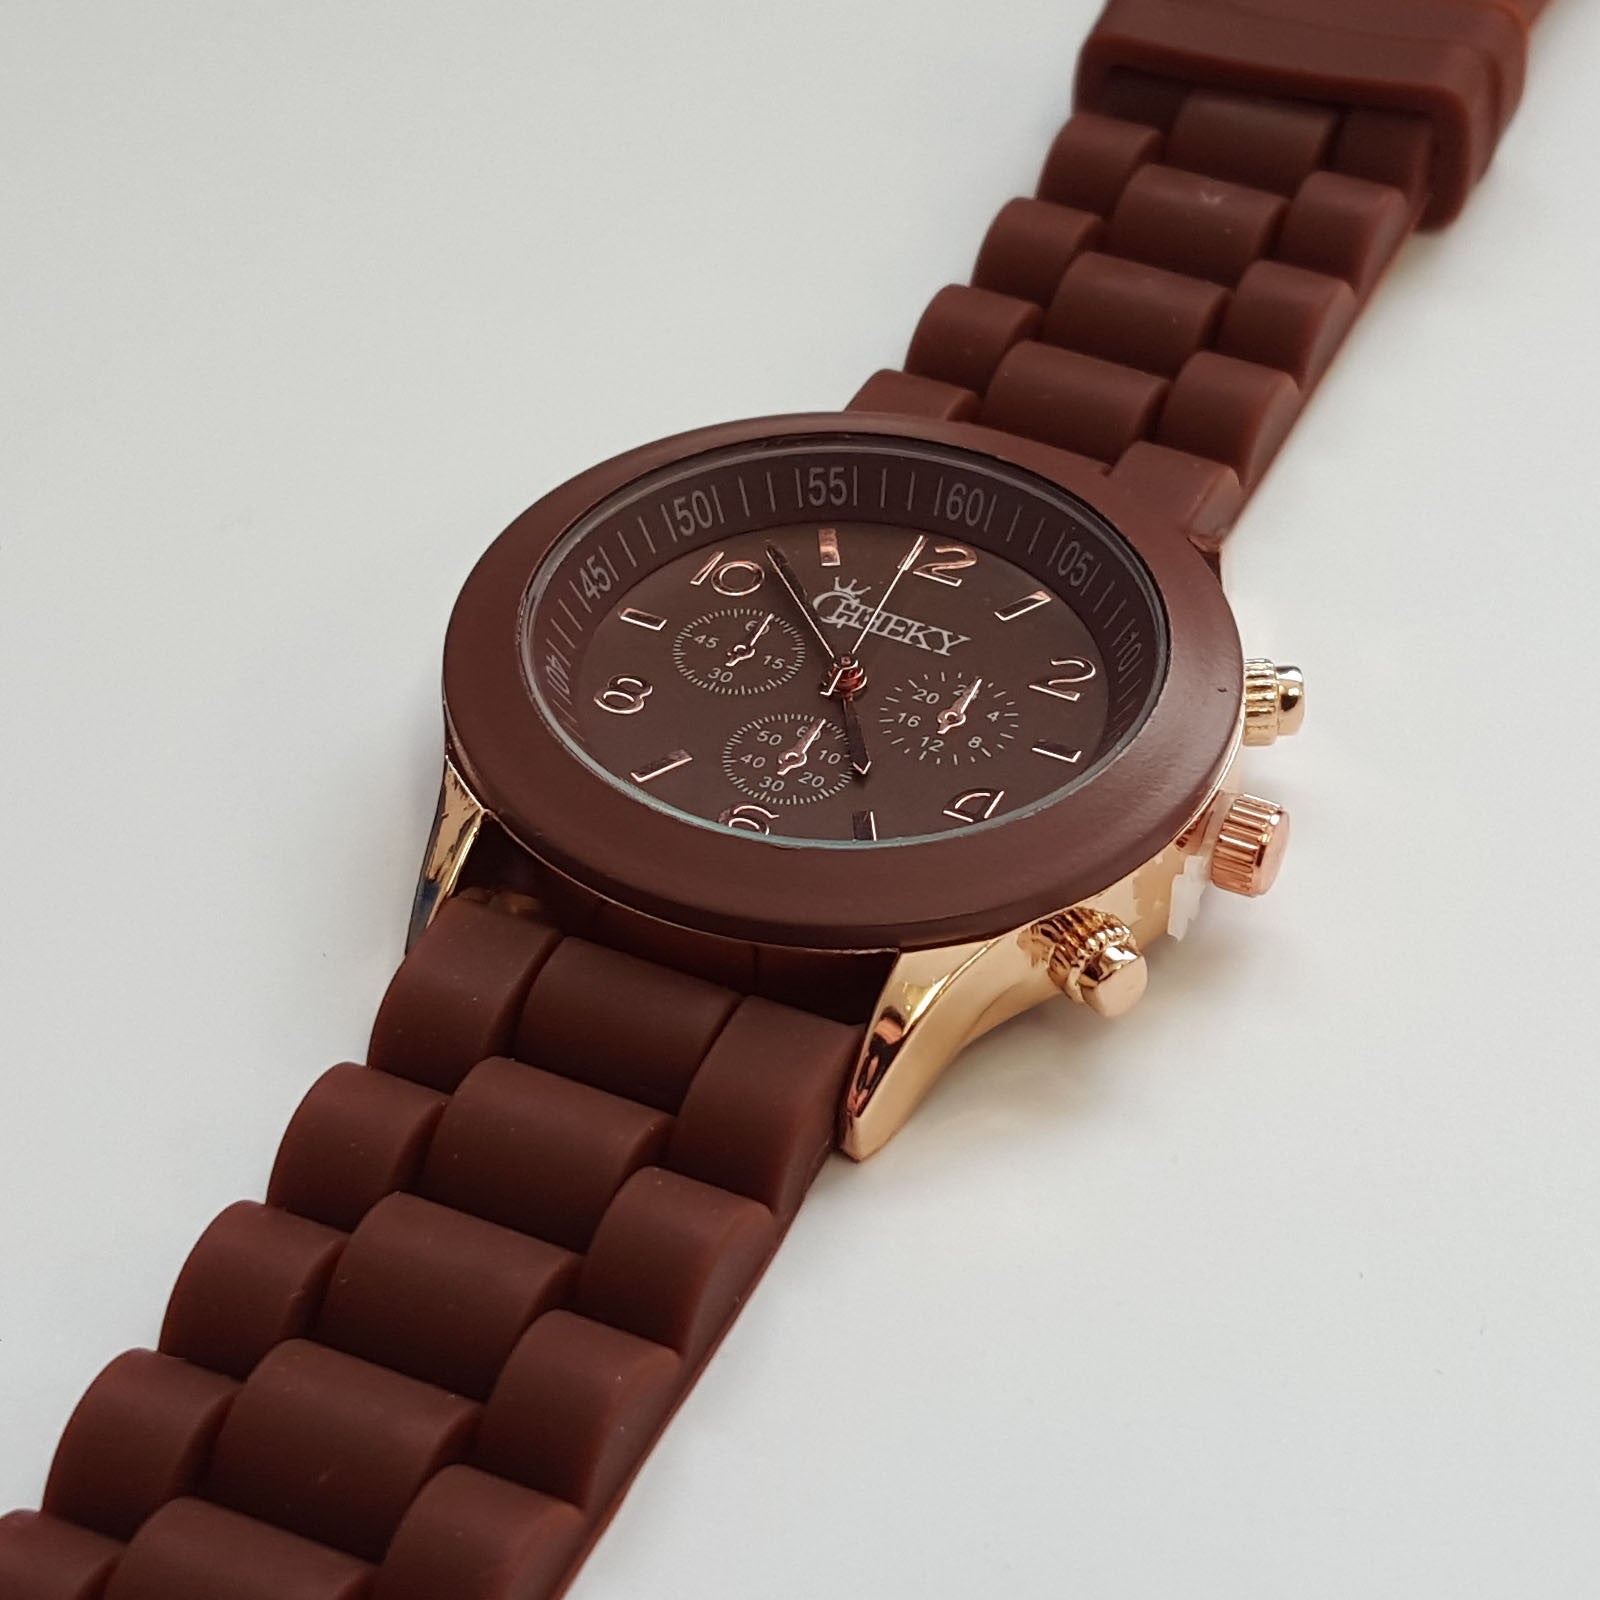 stylish mens brown silicone w rose gold fashion watch by cheeky stylish mens brown silicone w rose gold fashion watch by cheeky he 13